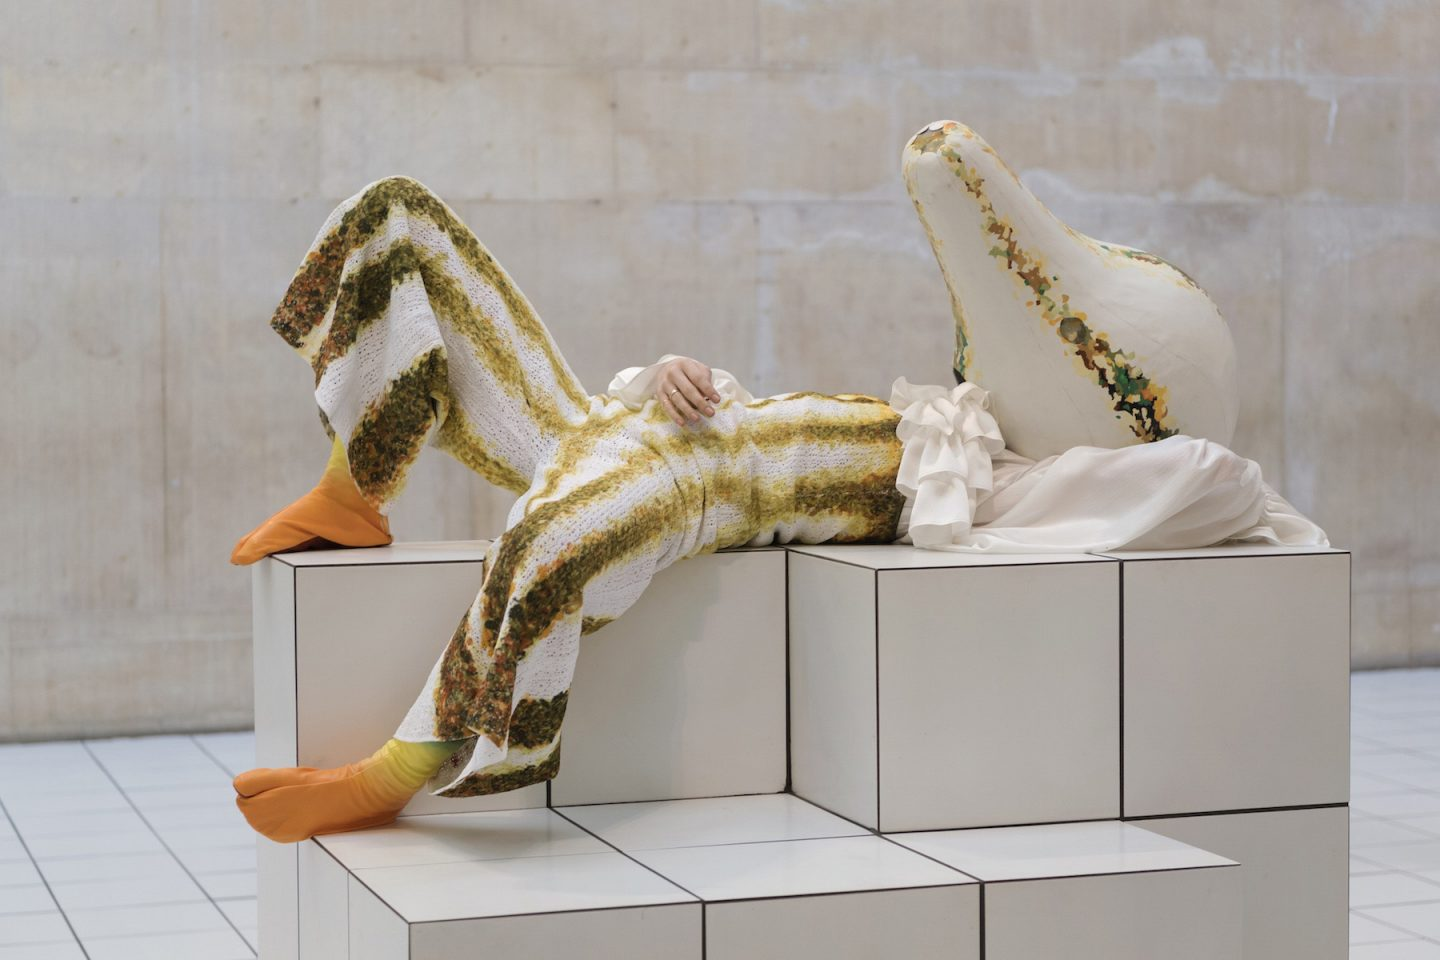 The Squash por Anthea Hamilton